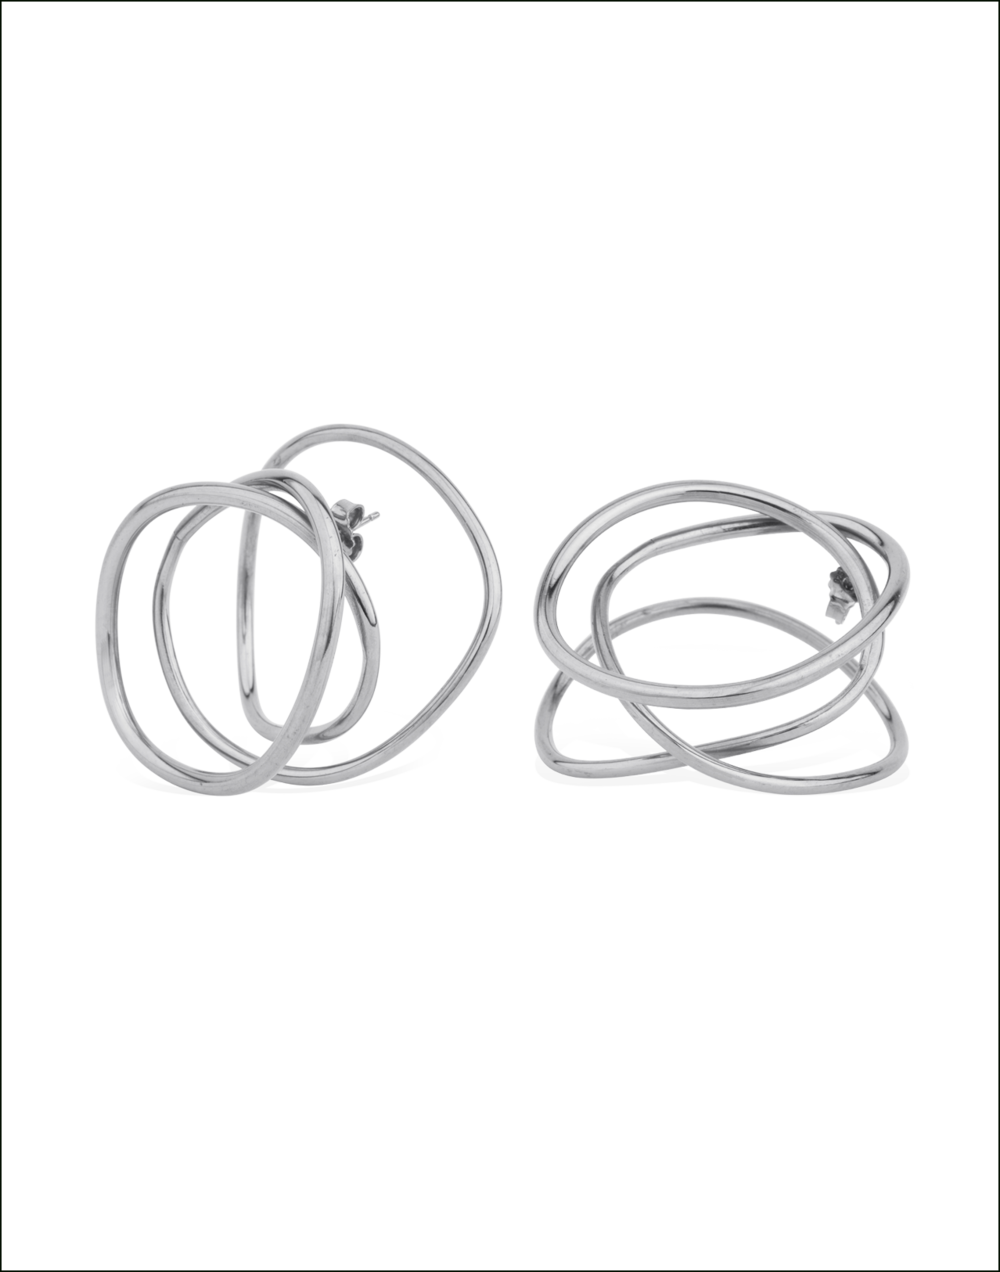 Completedworks-Earrings-Silver-An-Interval-Between-Thunderstorms-4-1.png